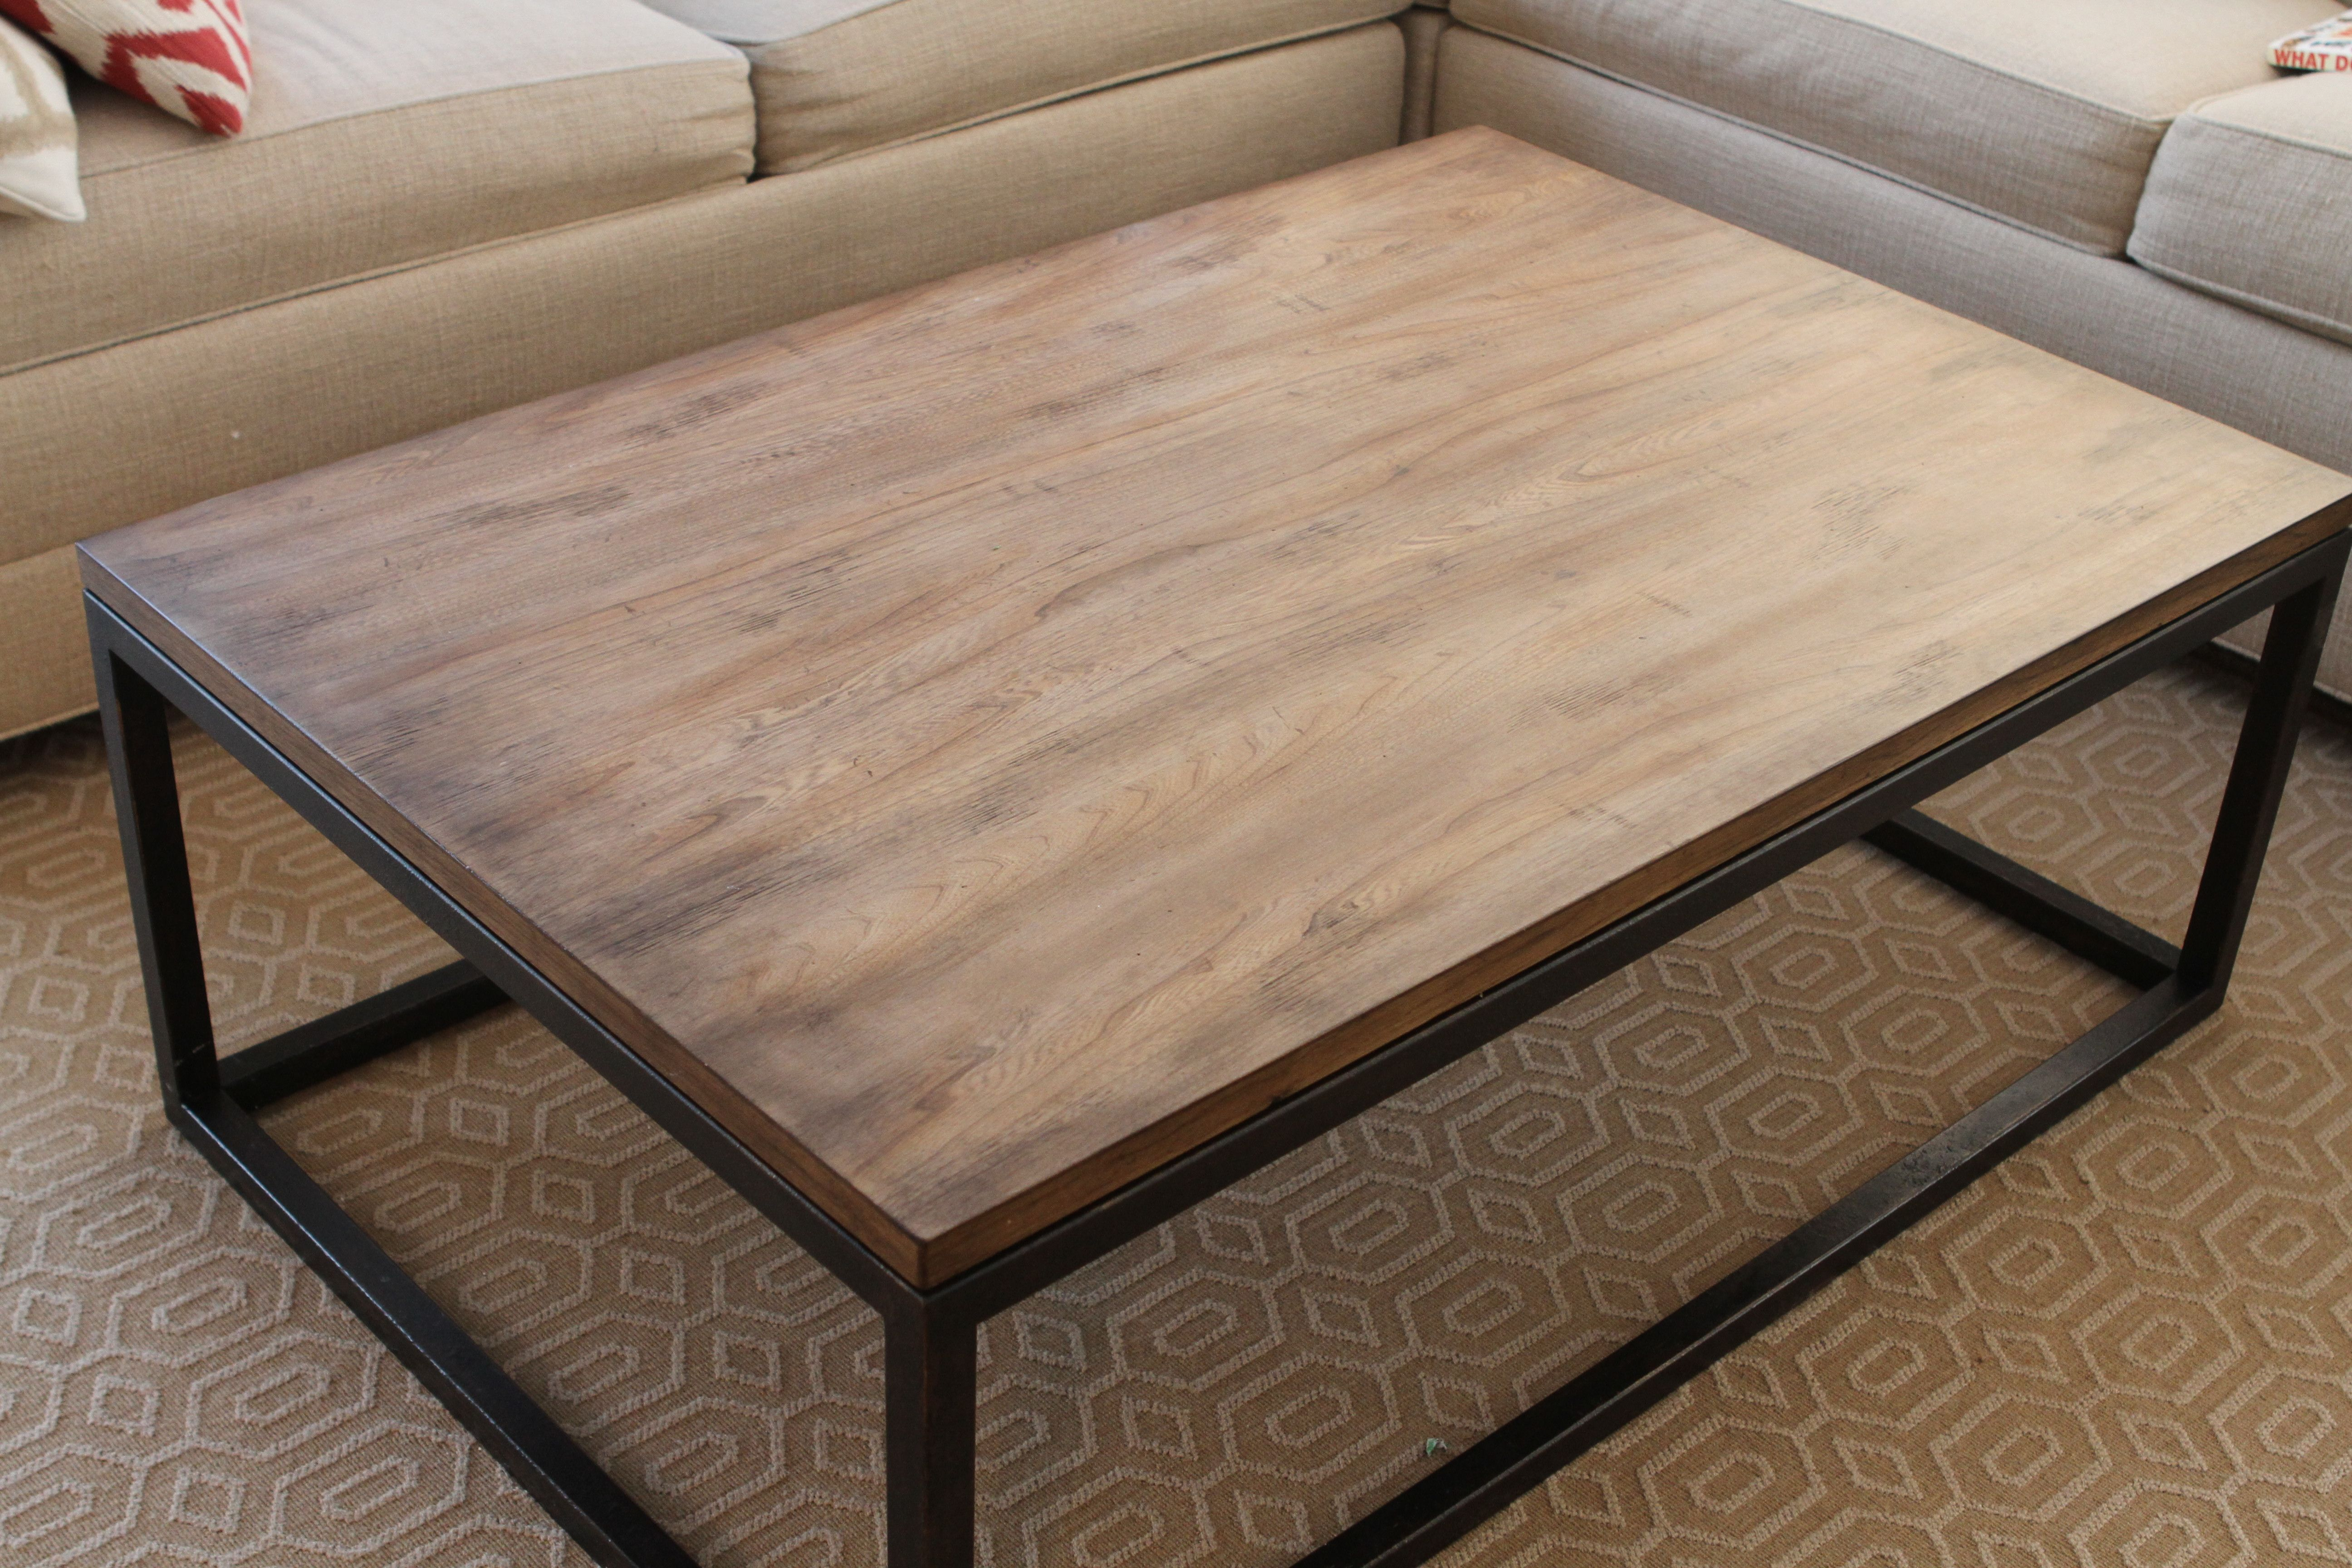 Superb INDUSTRIAL   Wood Coffee Table With Metal Legs.